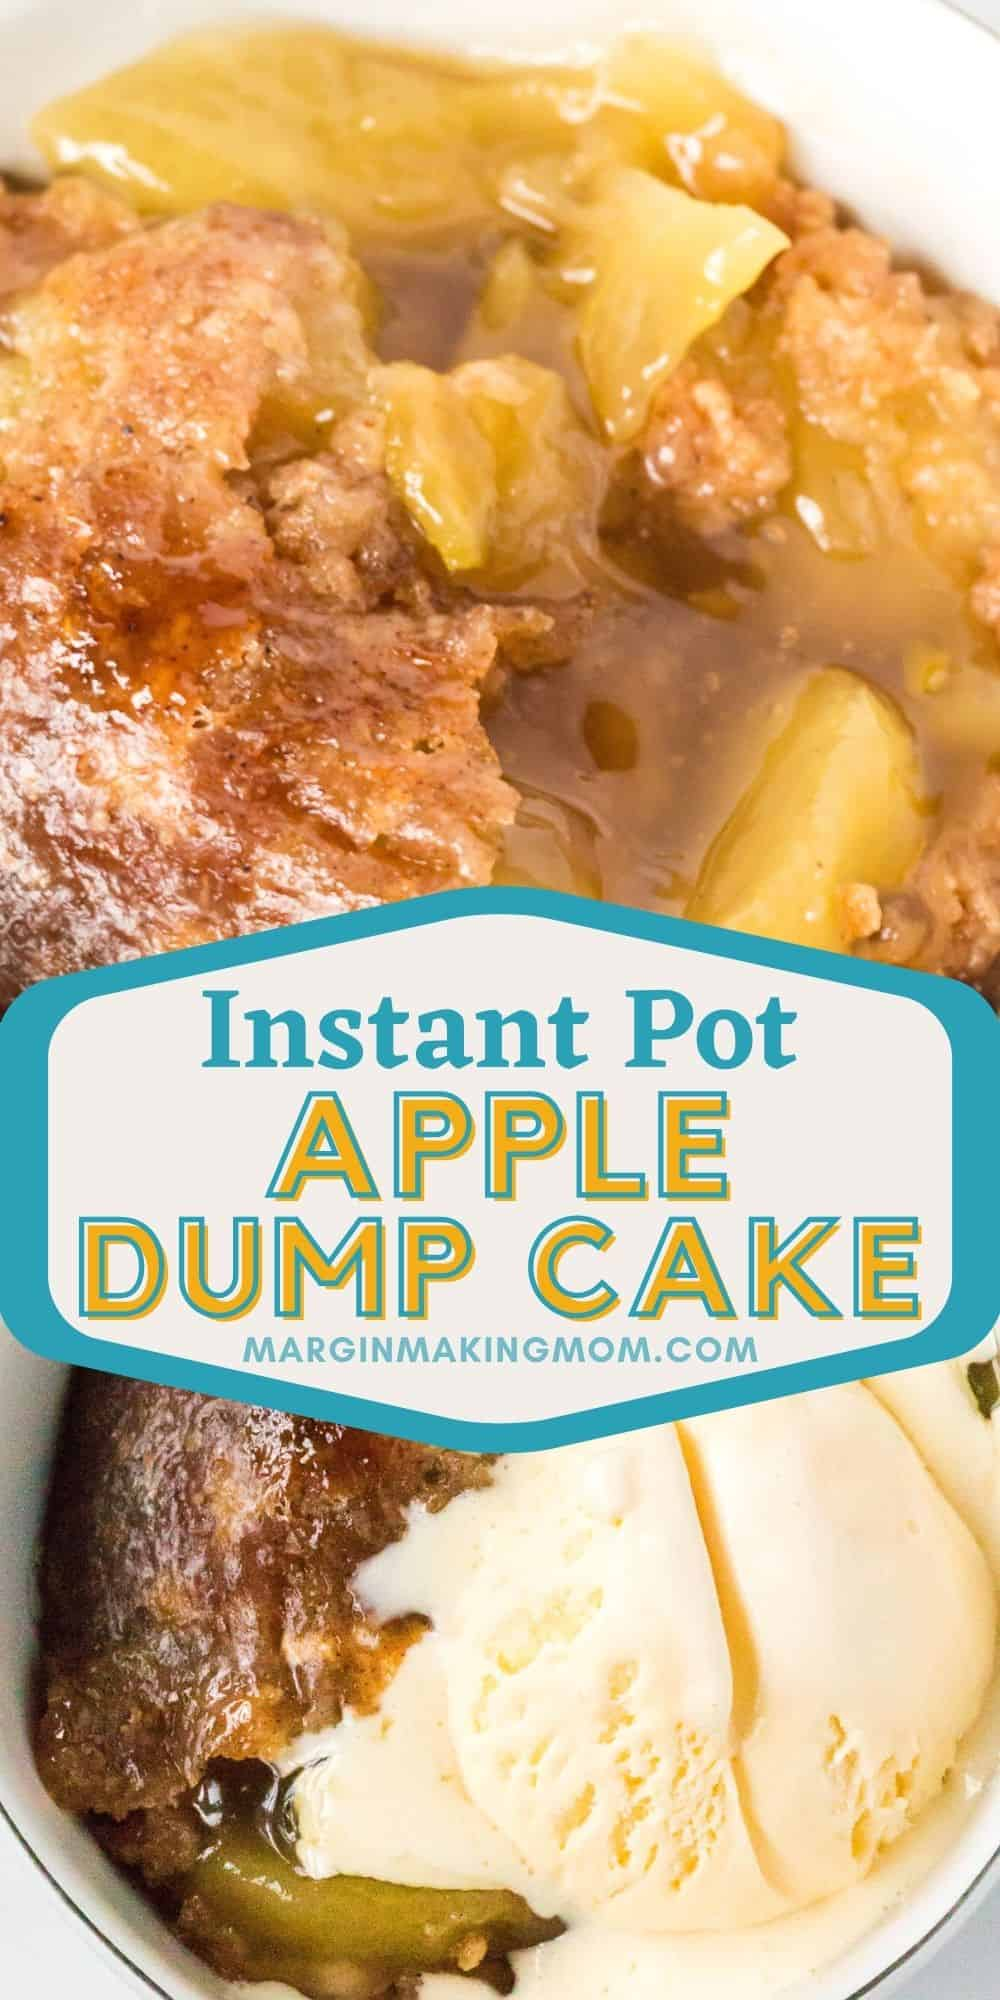 collage image featuring two photos. One shows an up-close view of apple dump cake cooked in the Instant Pot, and the other shows the same dessert topped with a scoop of ice cream